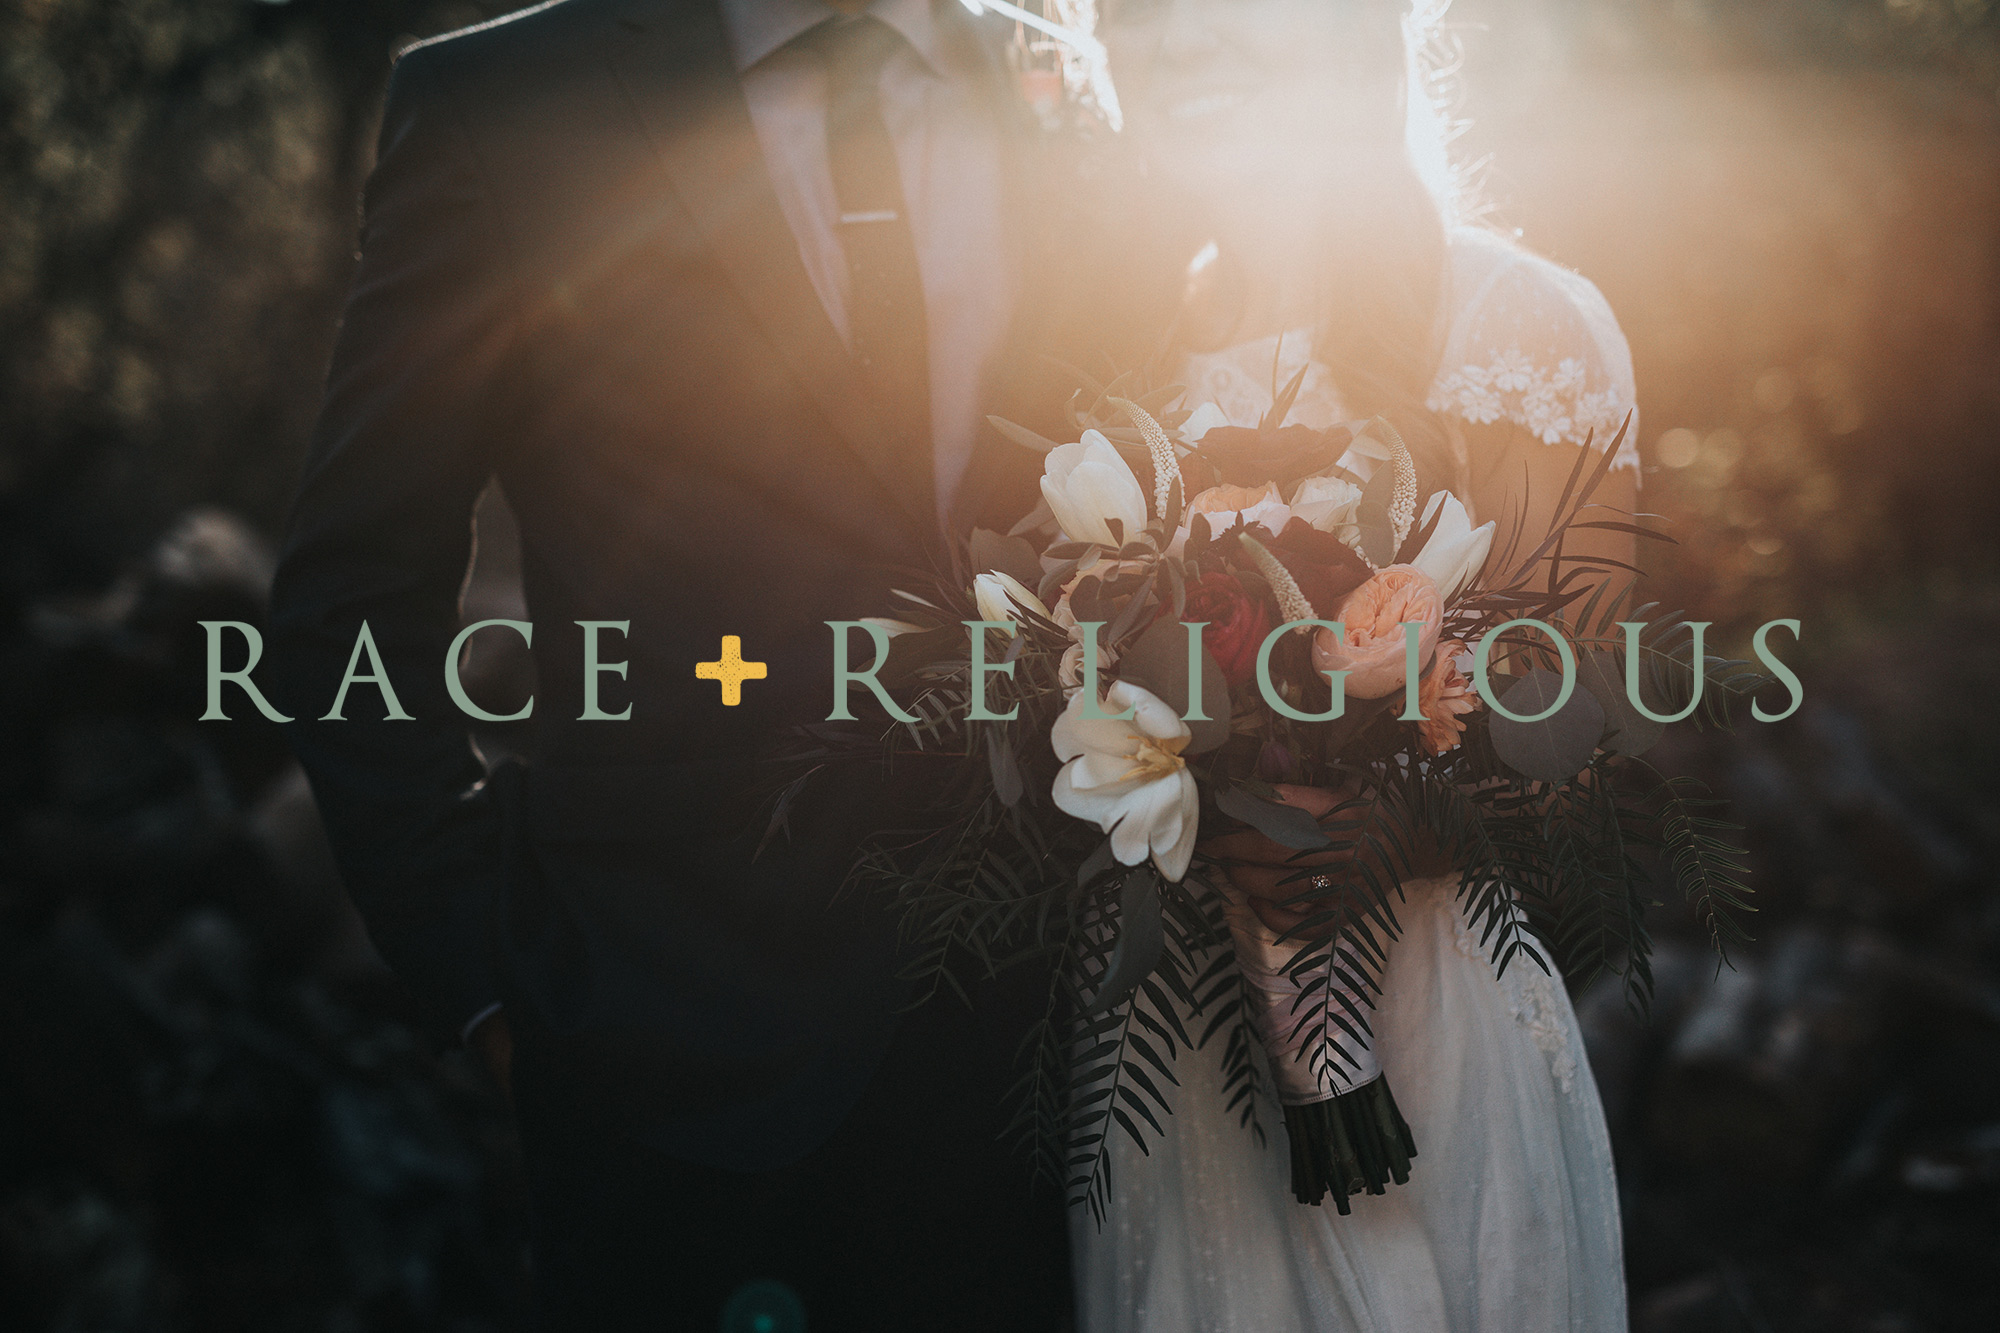 Race and Religious Brand Design